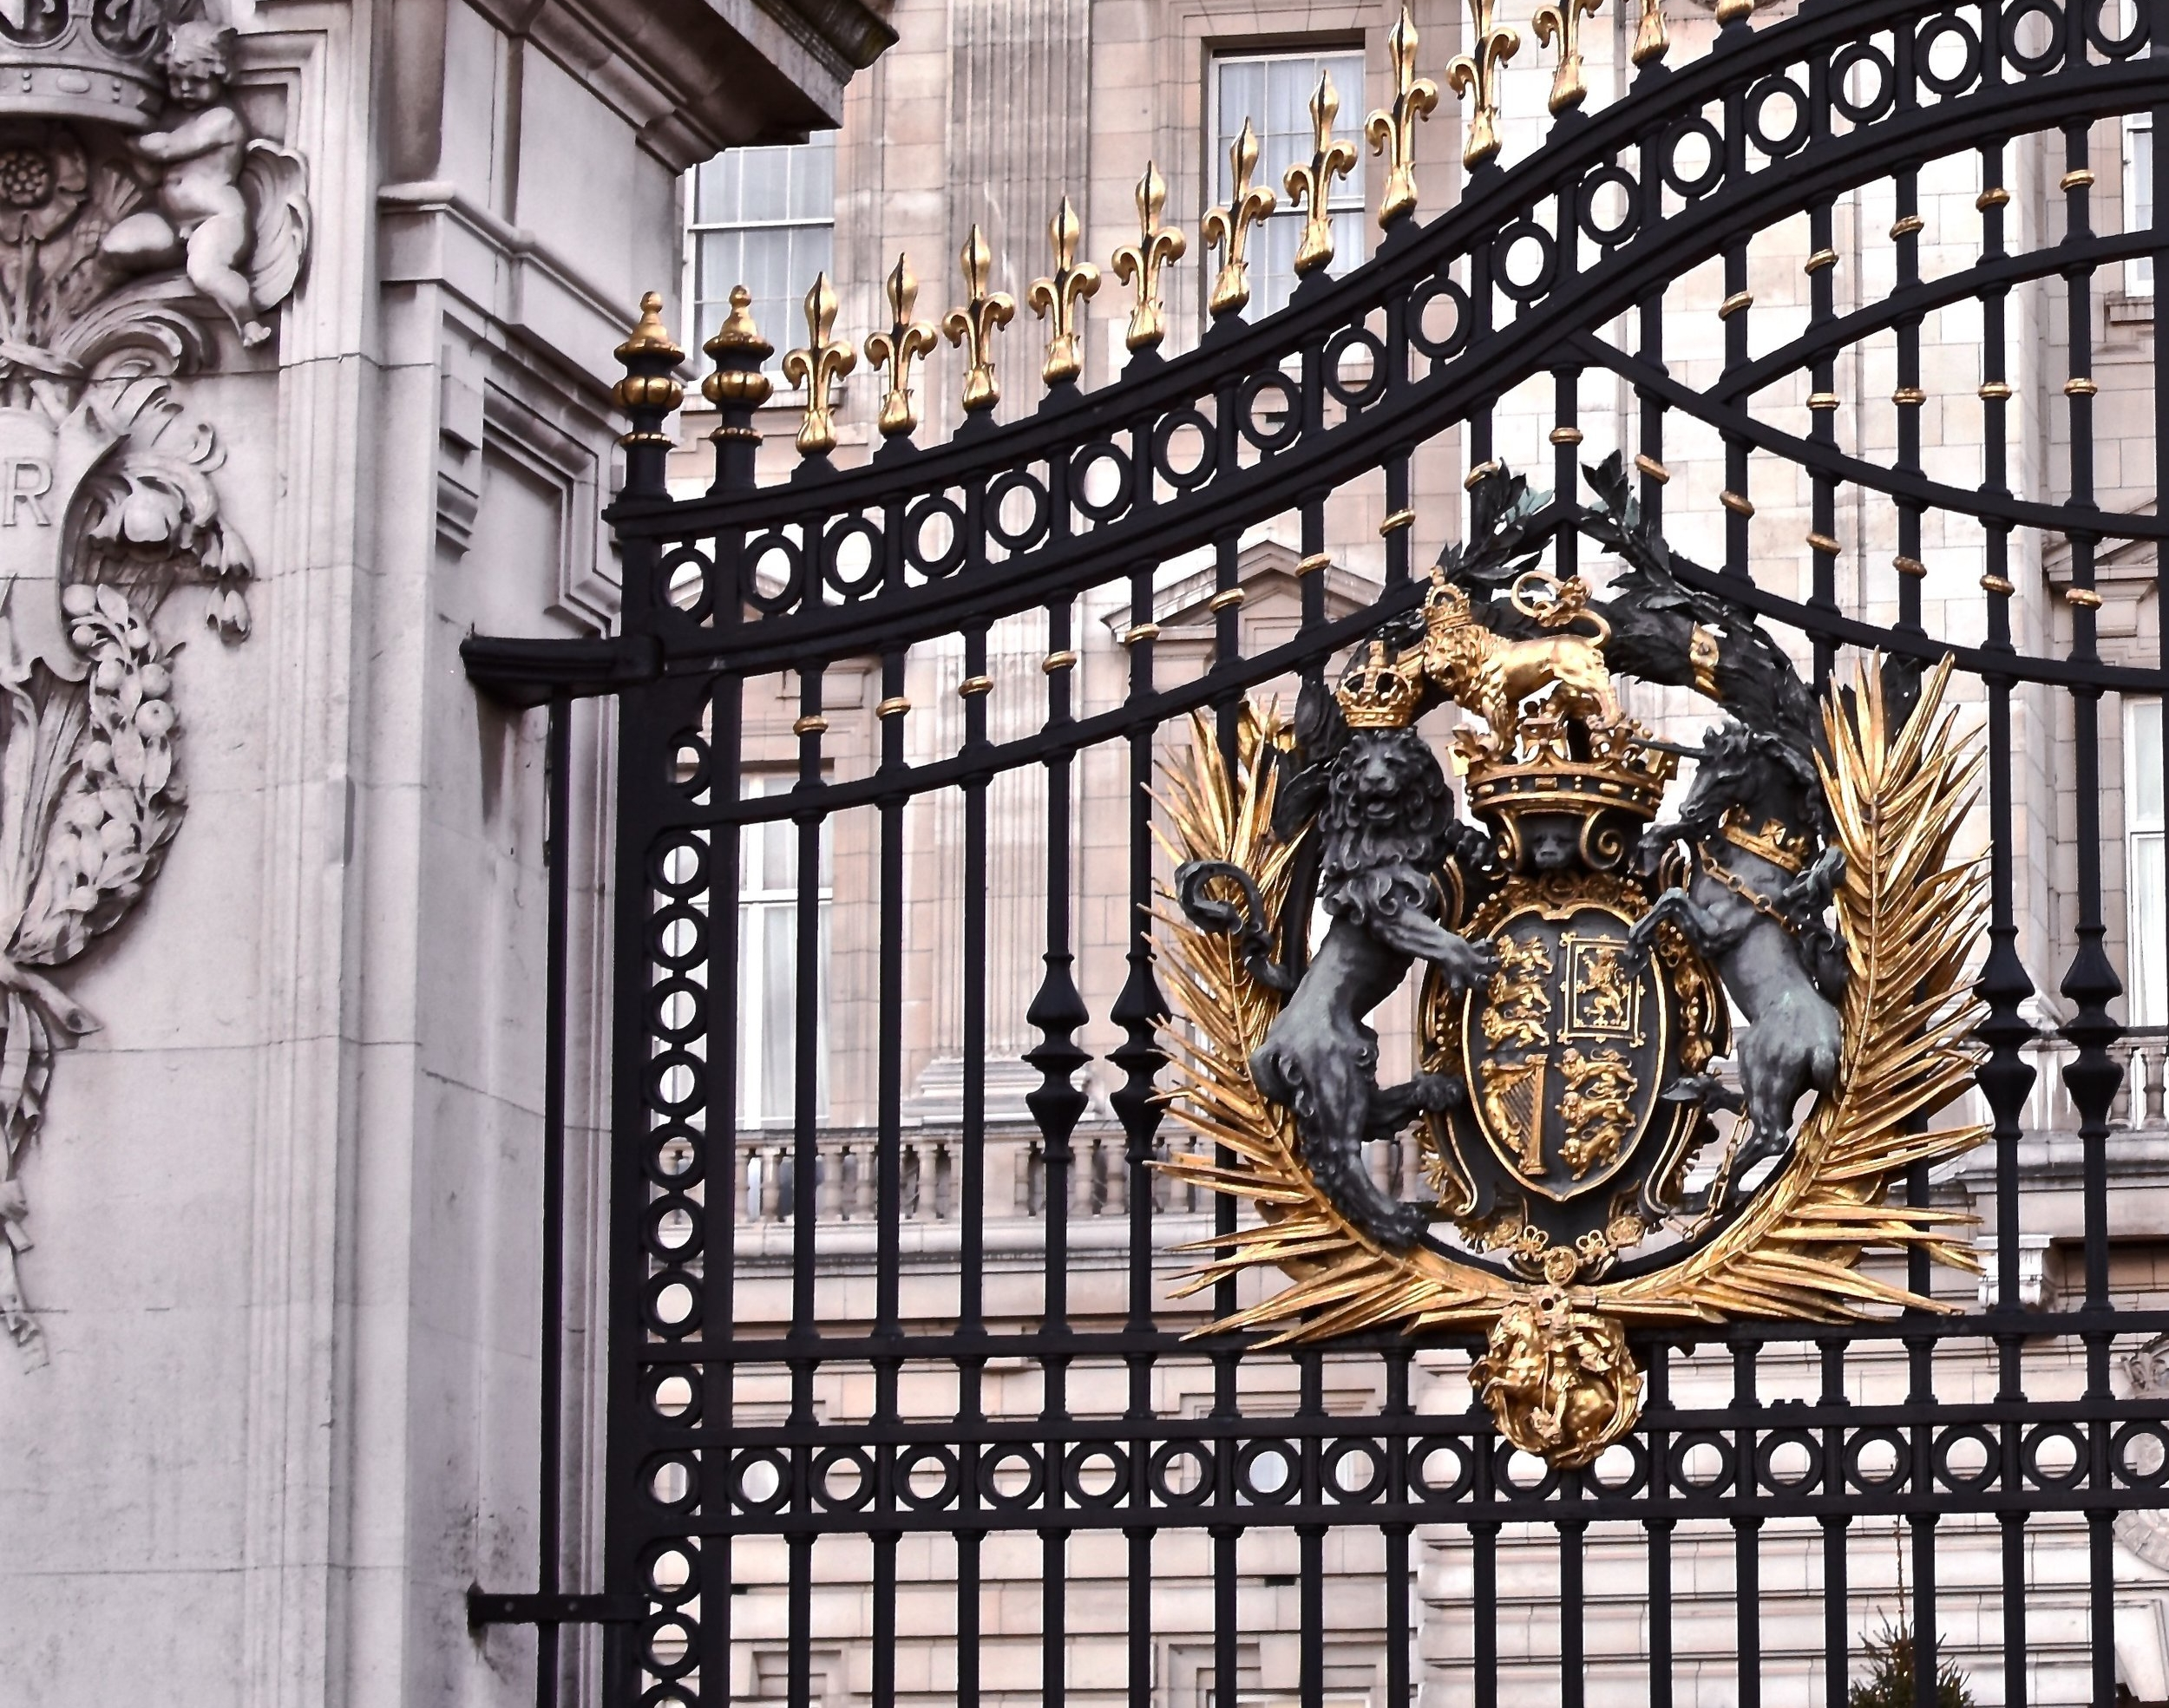 Flanked by an English lion on the left and Scottish unicorn on the right, the Royal coat of arms of the United Kingdom adorn the gates of Buckingham Palace.  As the official coat of arms of the British monarch, the Royal Arms as shown above may only be used by the Queen herself.